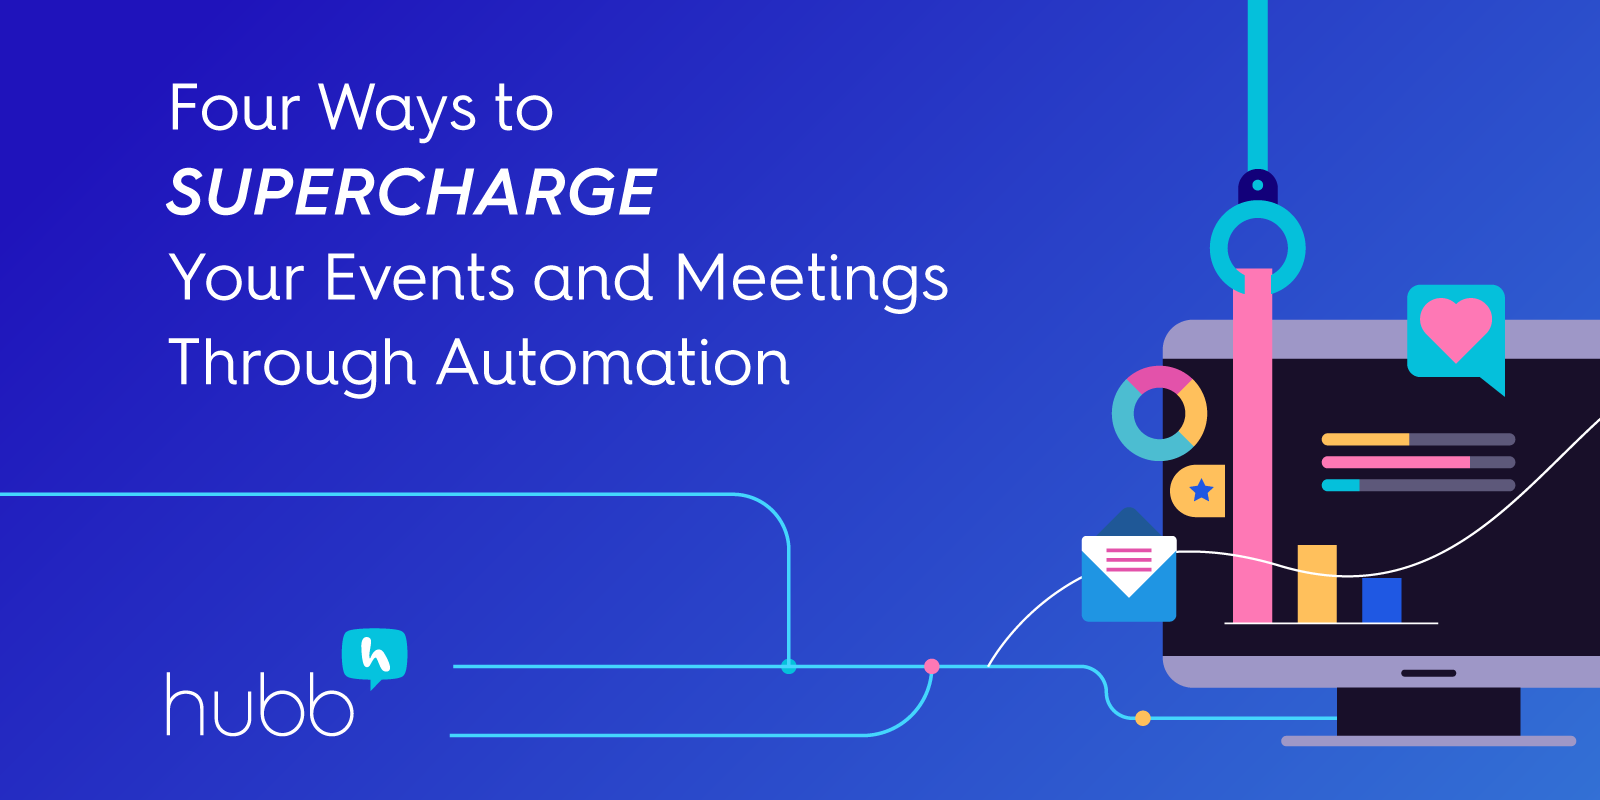 SuperchargeEvent-through-Automation-Social